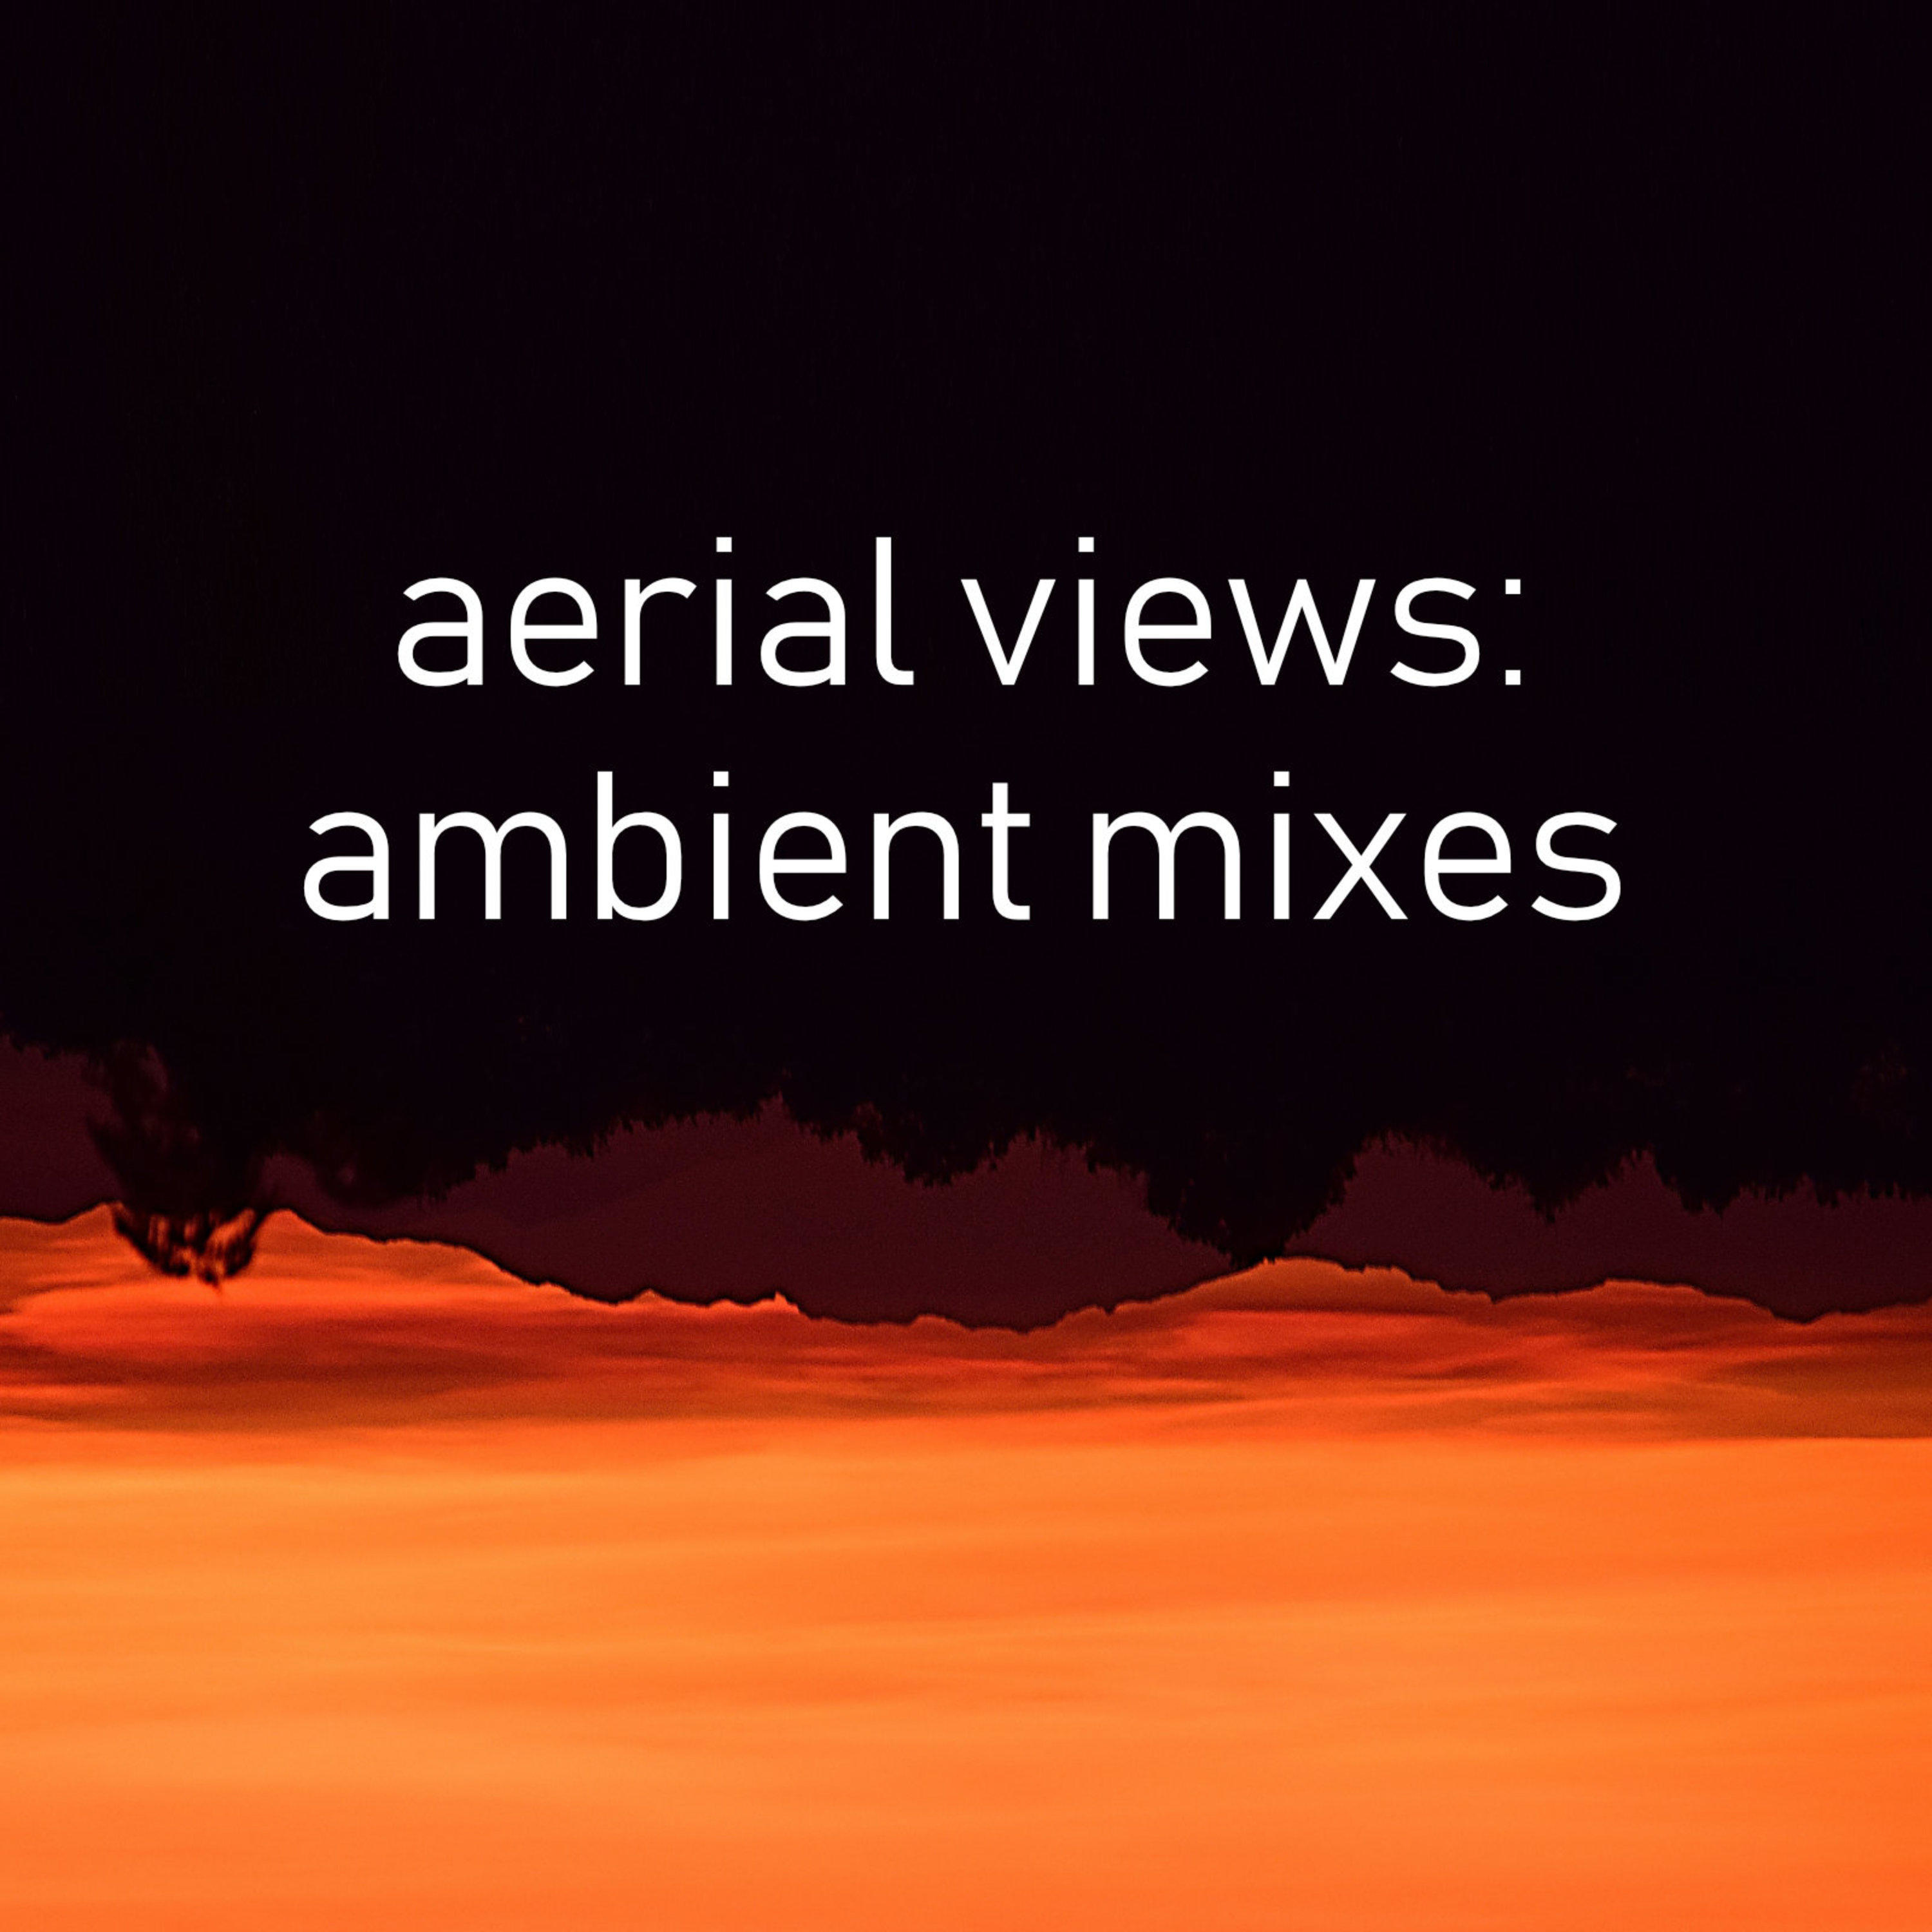 Aerial Views: Ambient Mixes | Listen via Stitcher for Podcasts